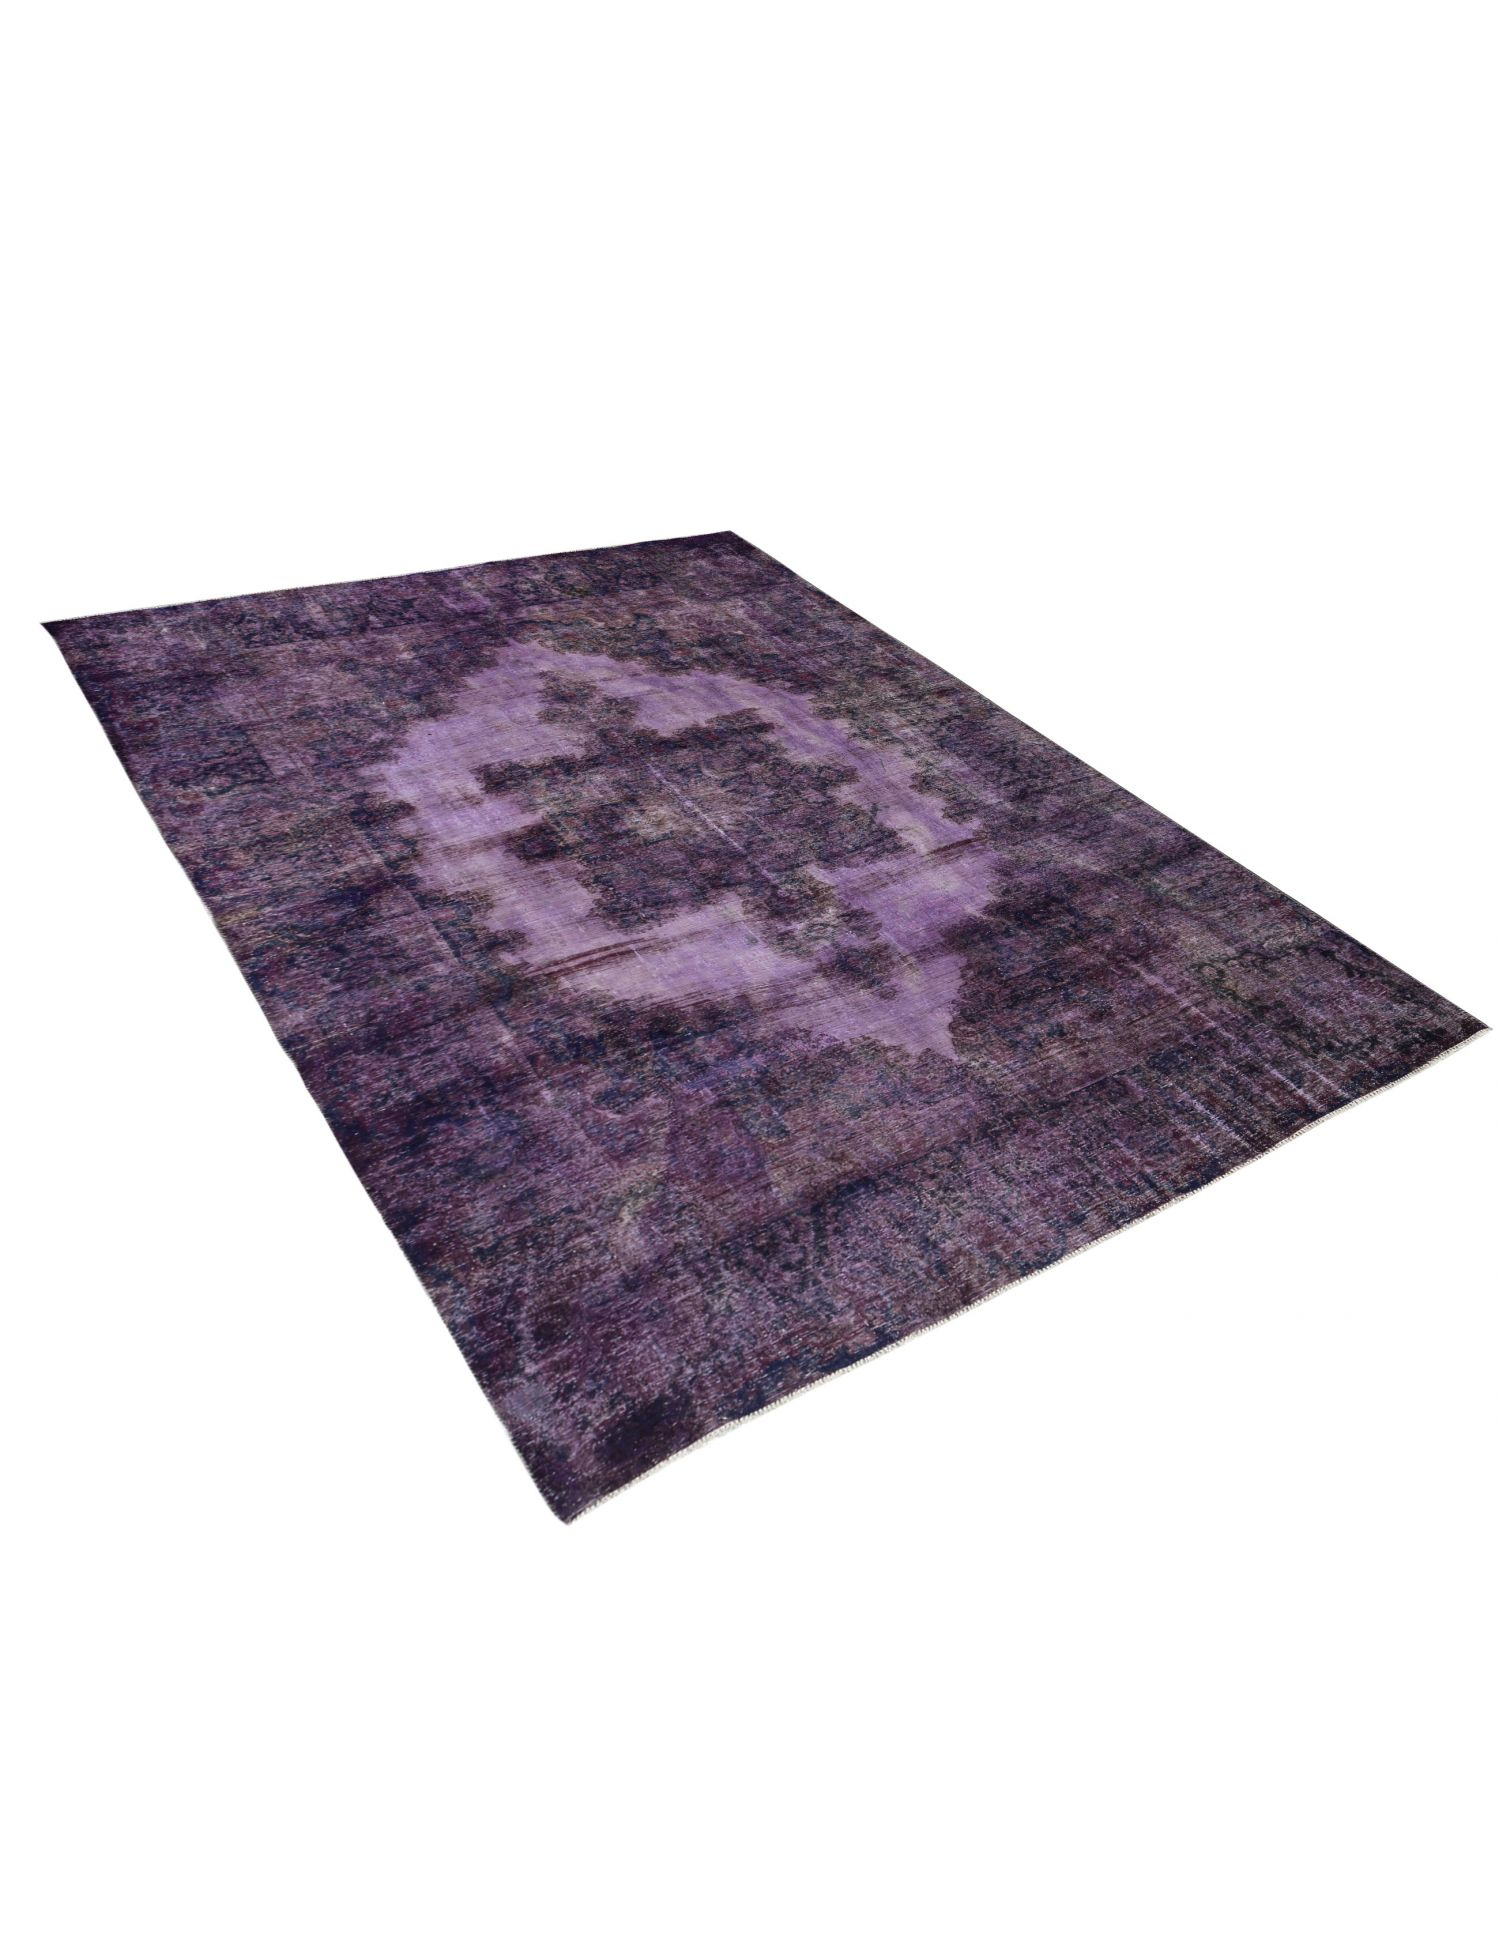 Vintage Carpets  purple <br/>408 x 293 cm